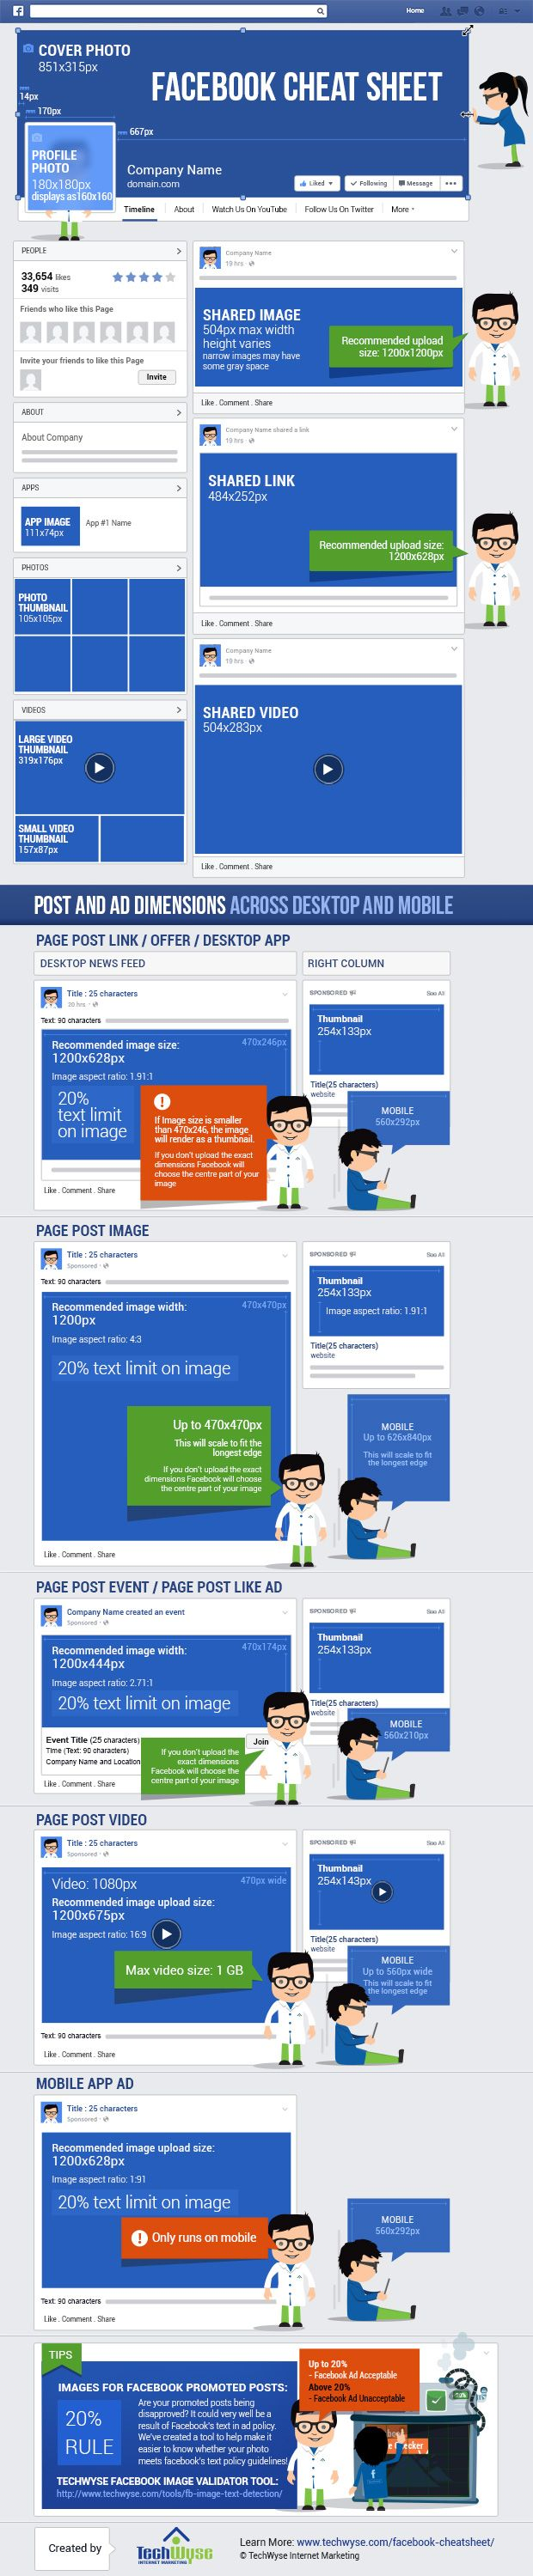 The Ultimate Guide on #Facebook Dimensions (for ALL Page & Feed Images) #Infographic